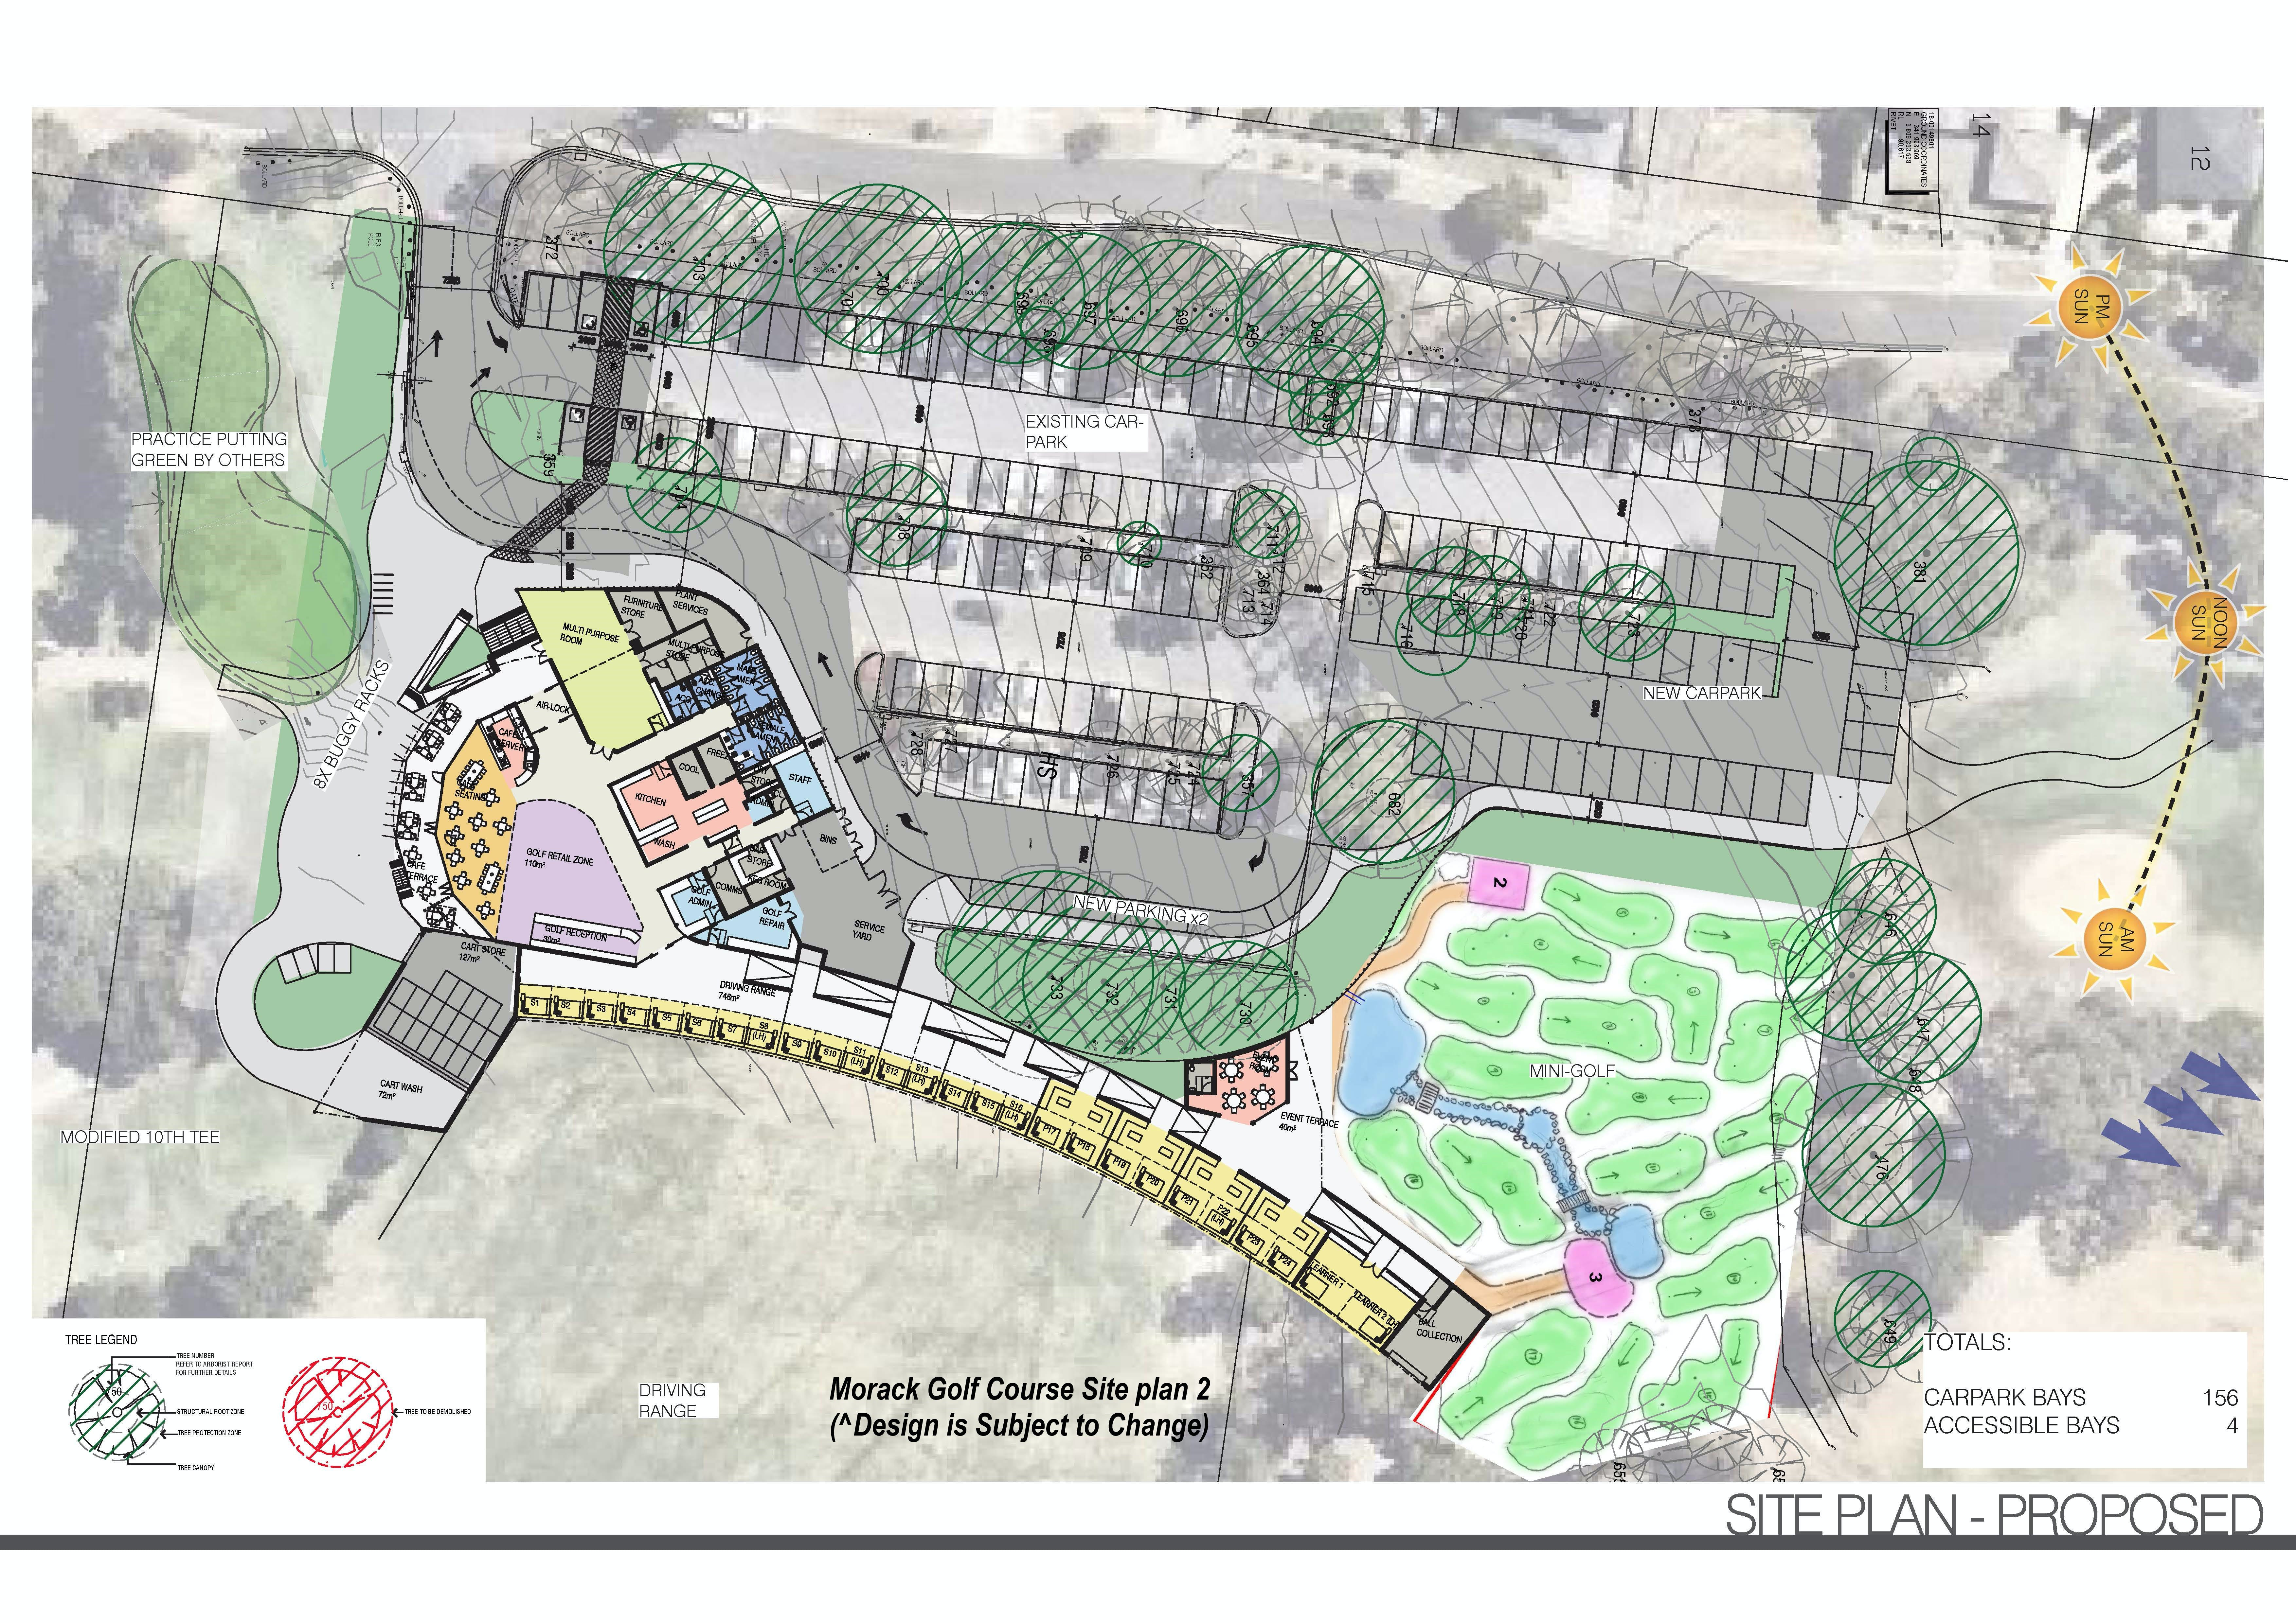 Morack Golf Course Redevelopment proposed site plan 2